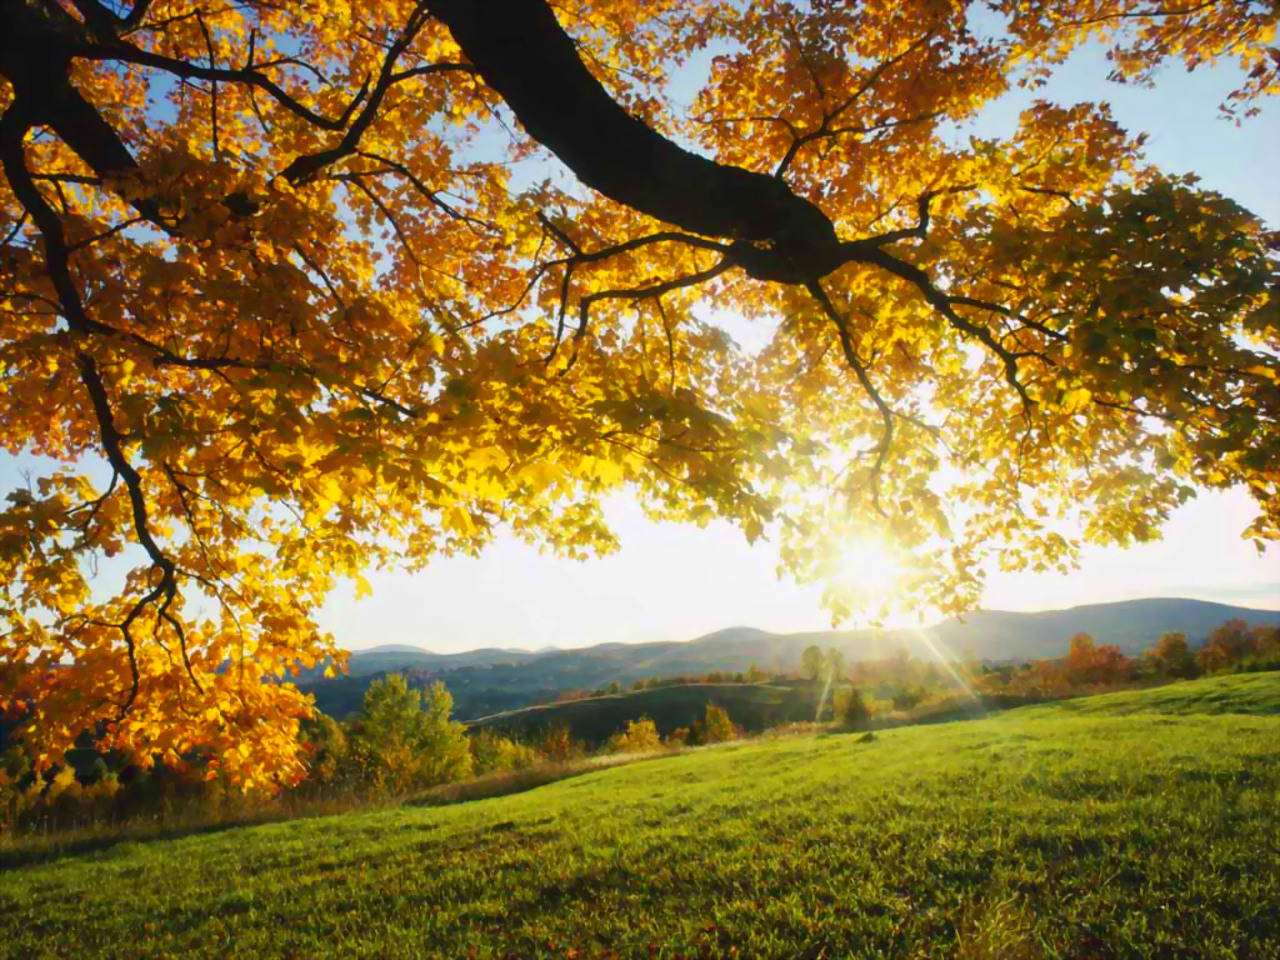 http://3.bp.blogspot.com/-O7BTEZO0nIM/UH6-Z0sQcmI/AAAAAAAAAMU/LID1P3r8Aws/s1600/autumn+morning+wallpaper+desktop+hd+field.jpg